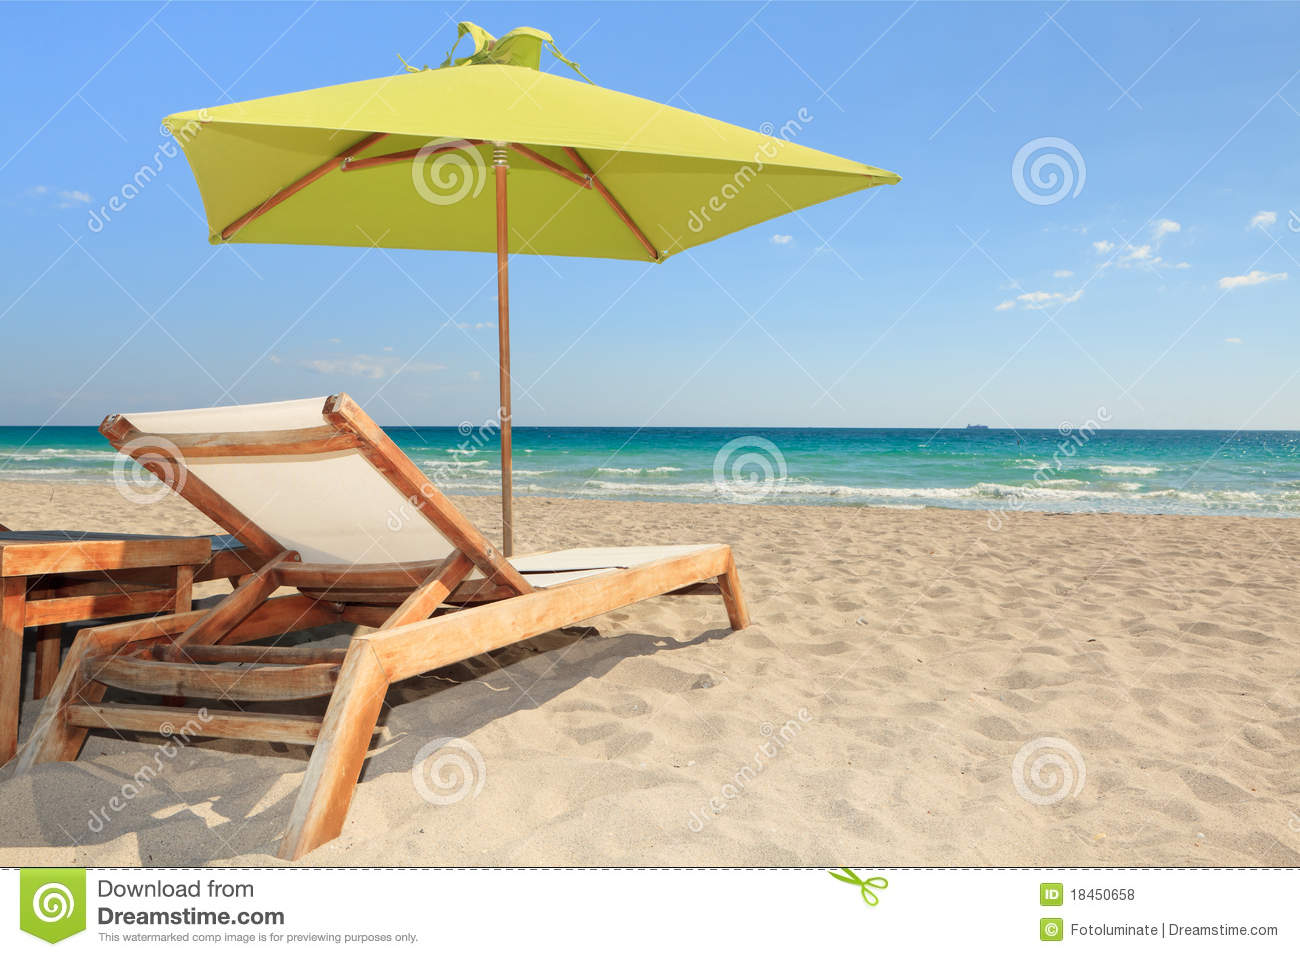 Colorful Beach Umbrella And Lounge Chair Images Image – Lounge Chair Umbrella